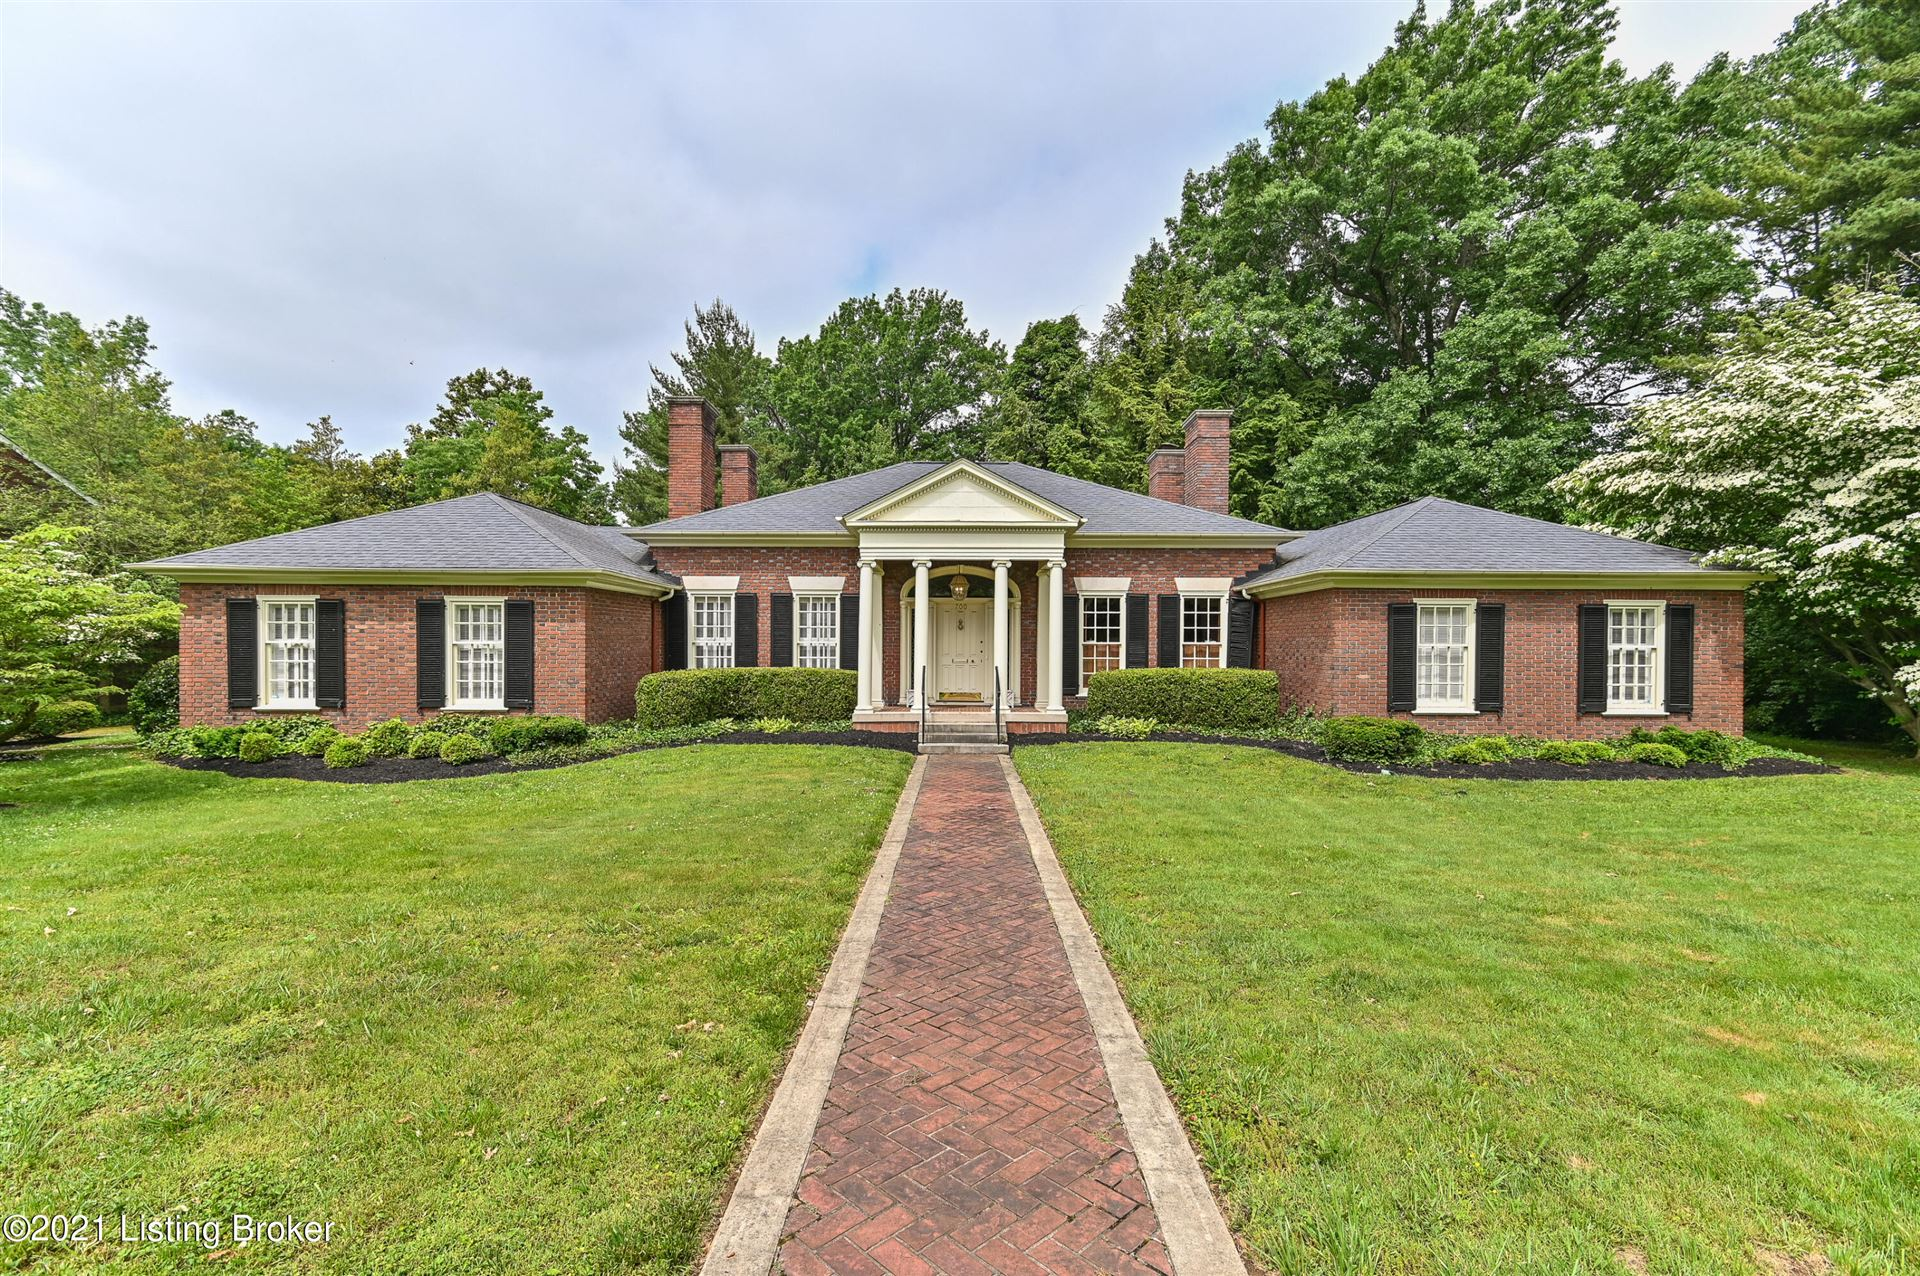 Photo for 700 Braeview Rd, Louisville, KY 40206 (MLS # 1587717)